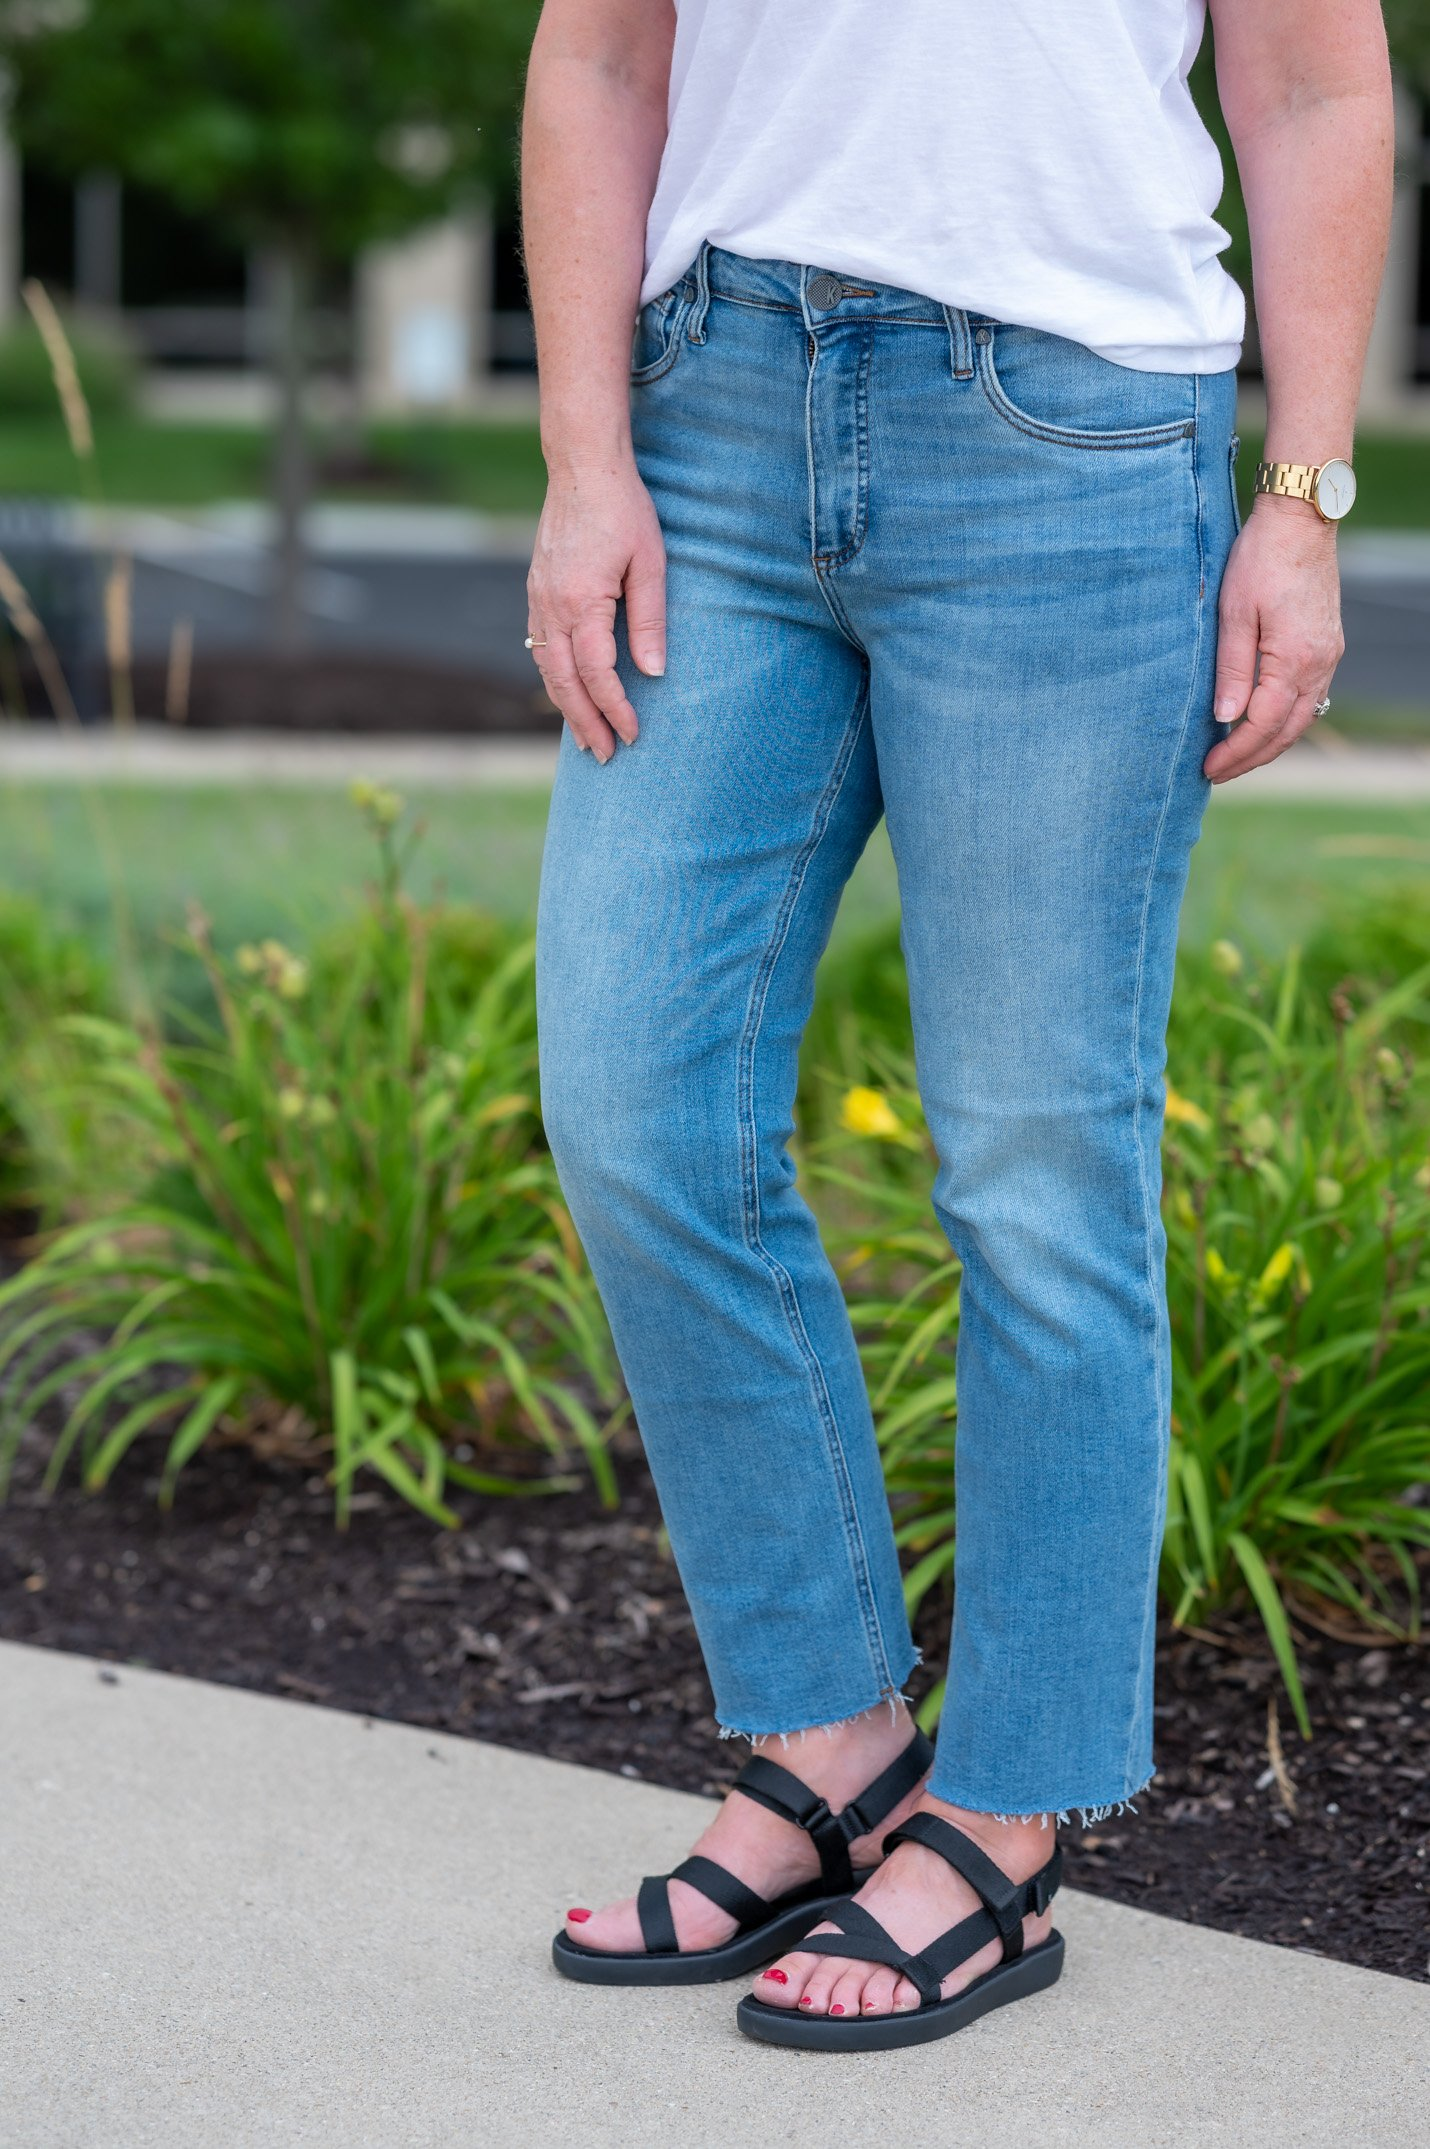 Comfort Sandals and Jeans